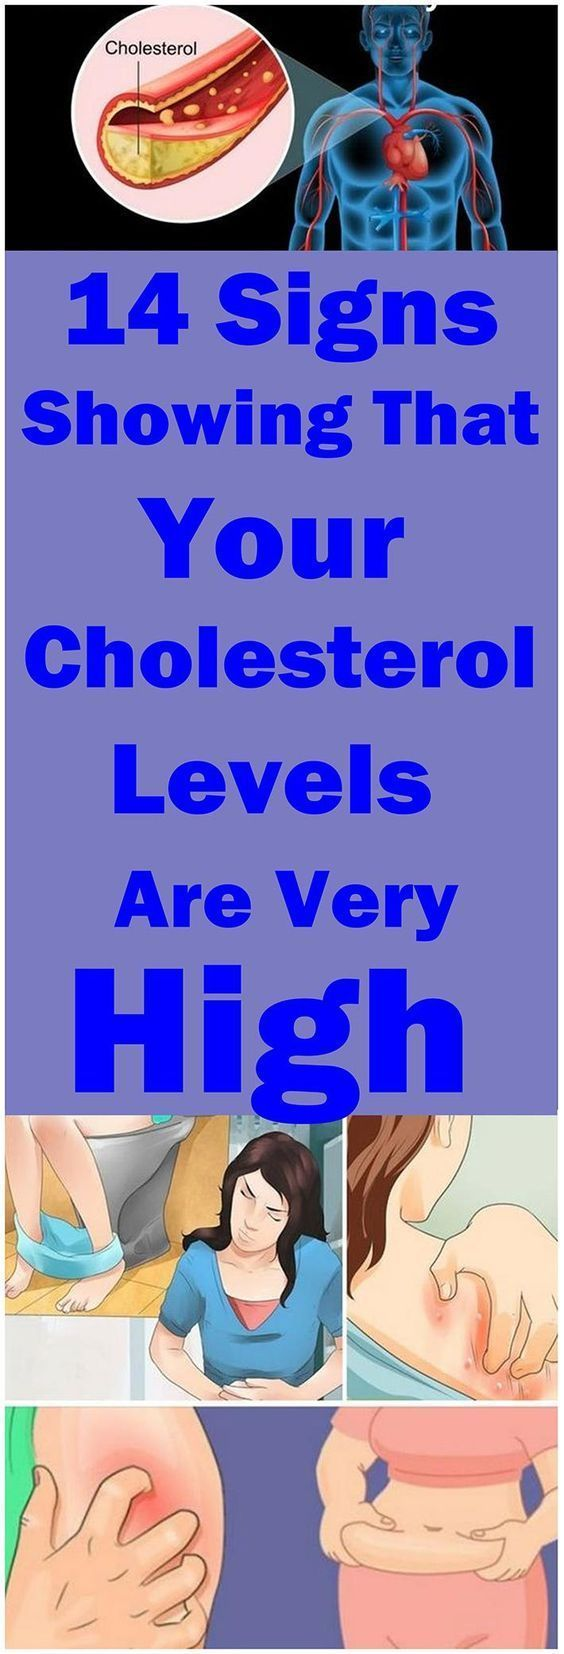 14 Signs Showing That Your Cholesterol Levels Are Very High#health#cholesterol#high #highcholesterol